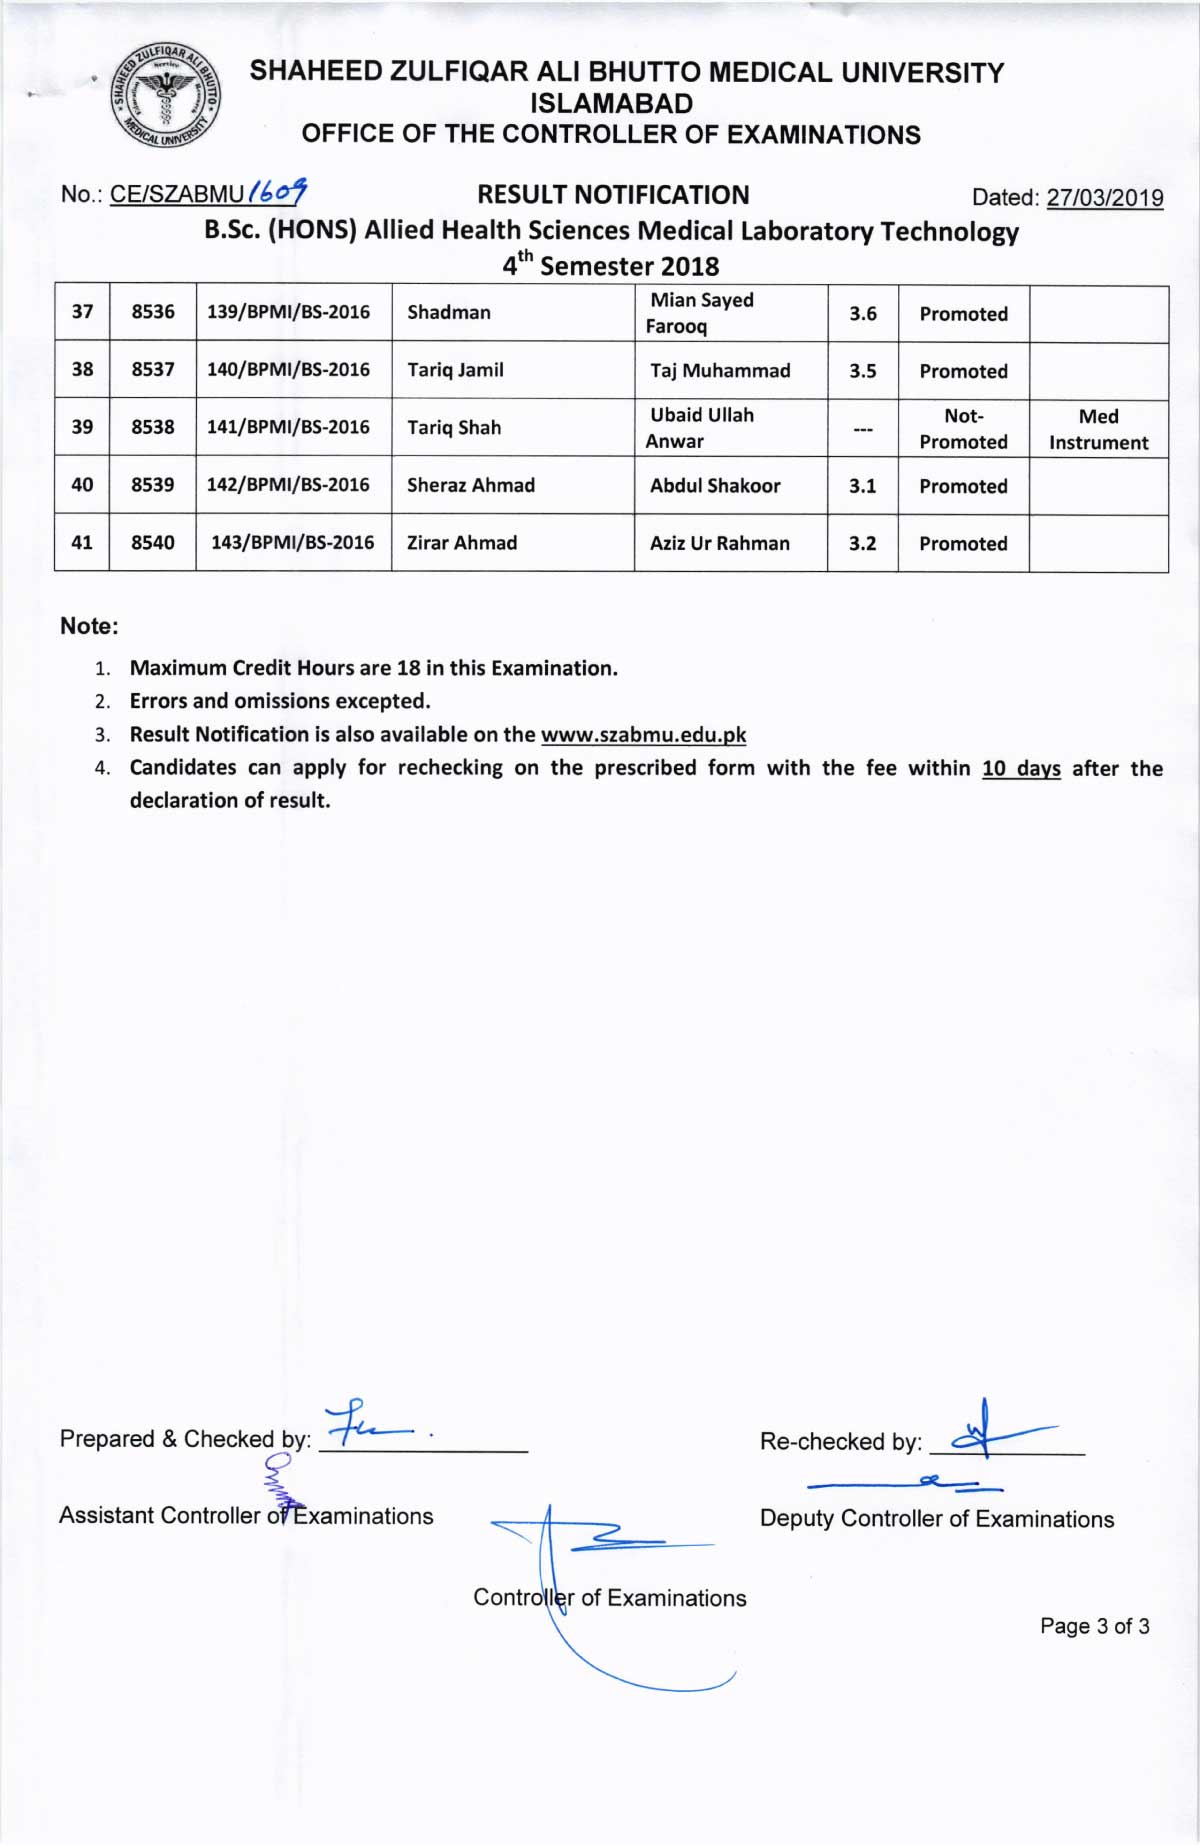 Result Notification of BSc (Hons) Allied Health Sciences Medical Laboratory Technology 4th Semester 2018